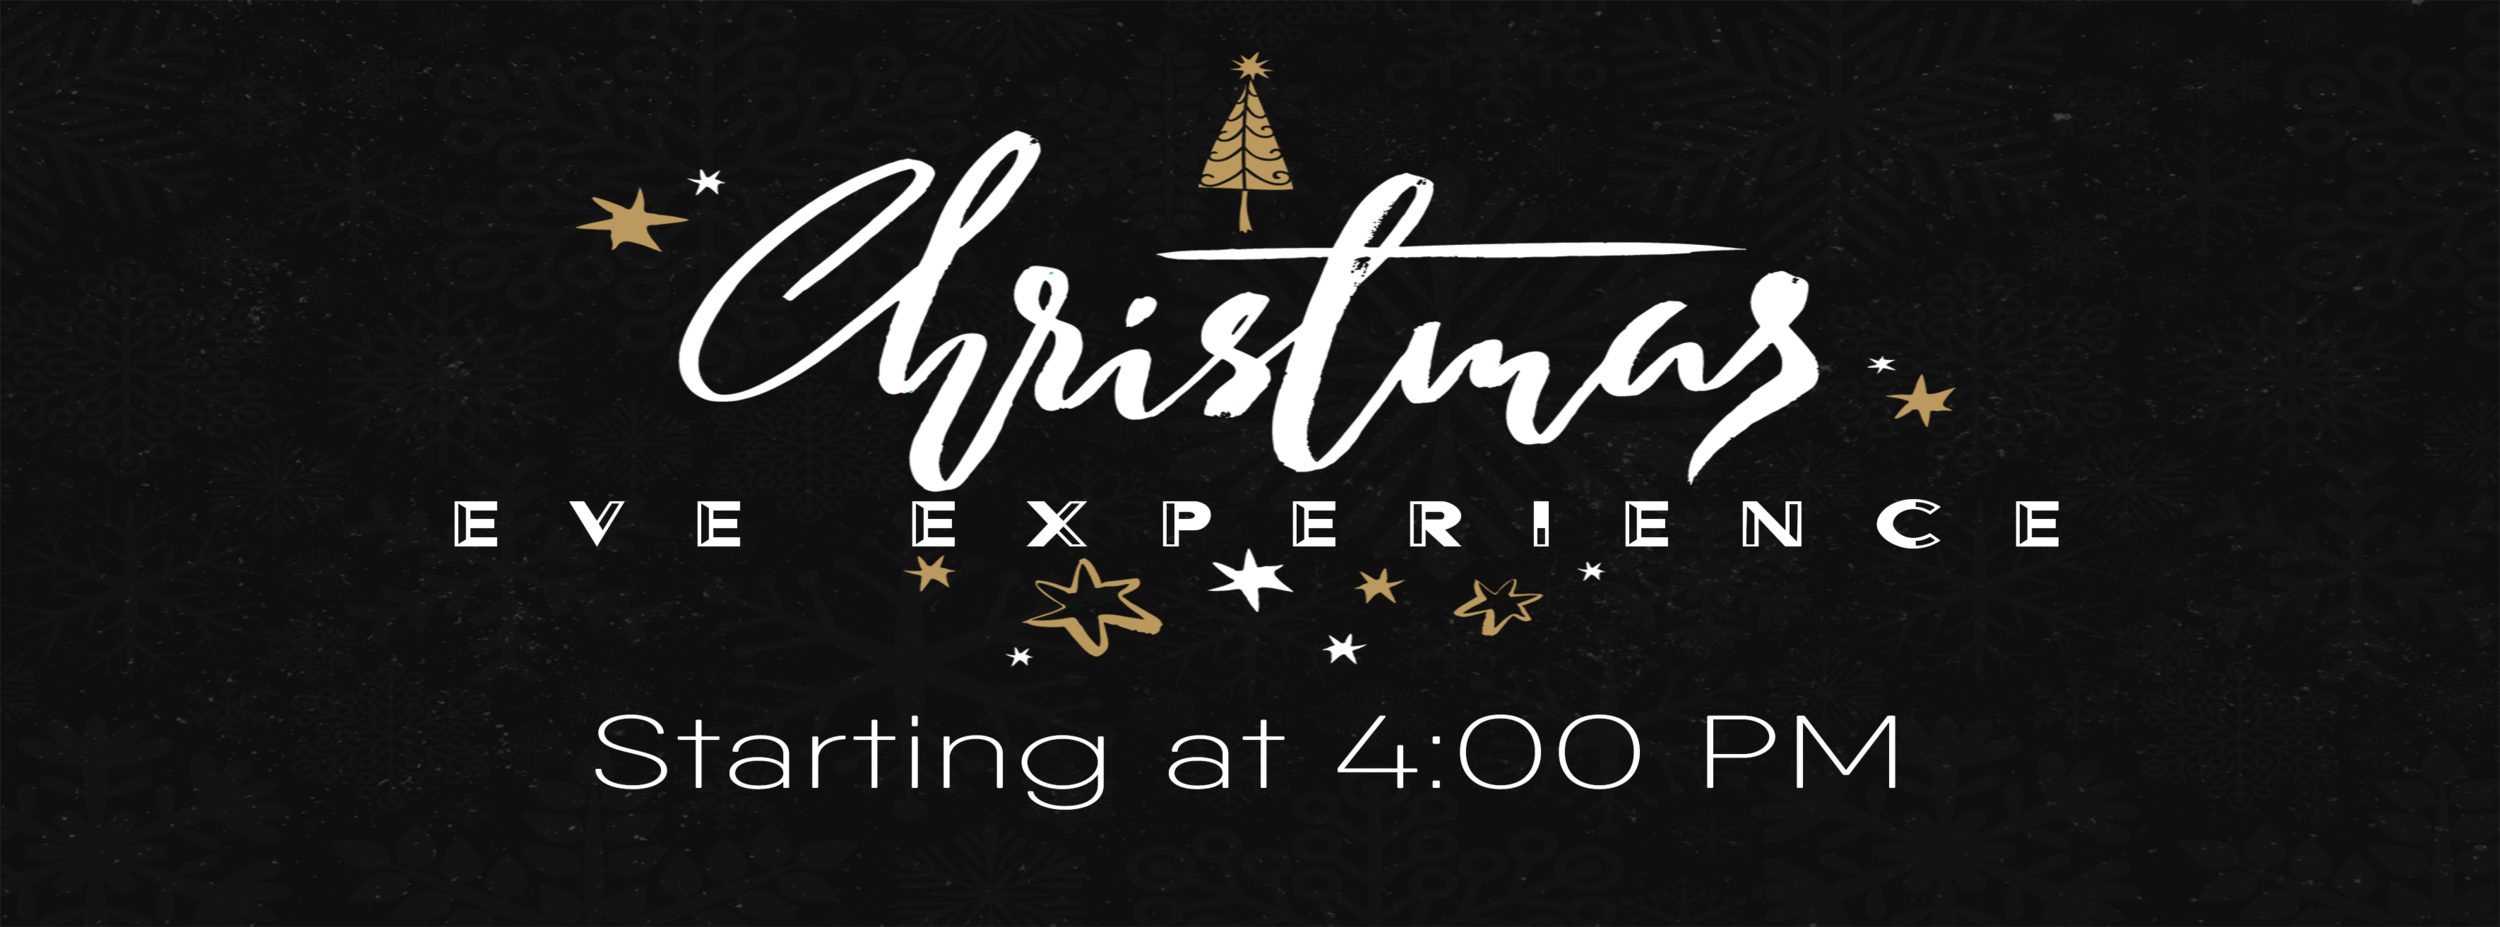 You're Invited to our  Christmas Eve Experience  Sunday, December 24th  Come early for: Cookies and Cocoa served @ 3:30 PM  One Hour Experience begins @ 4:00 PM